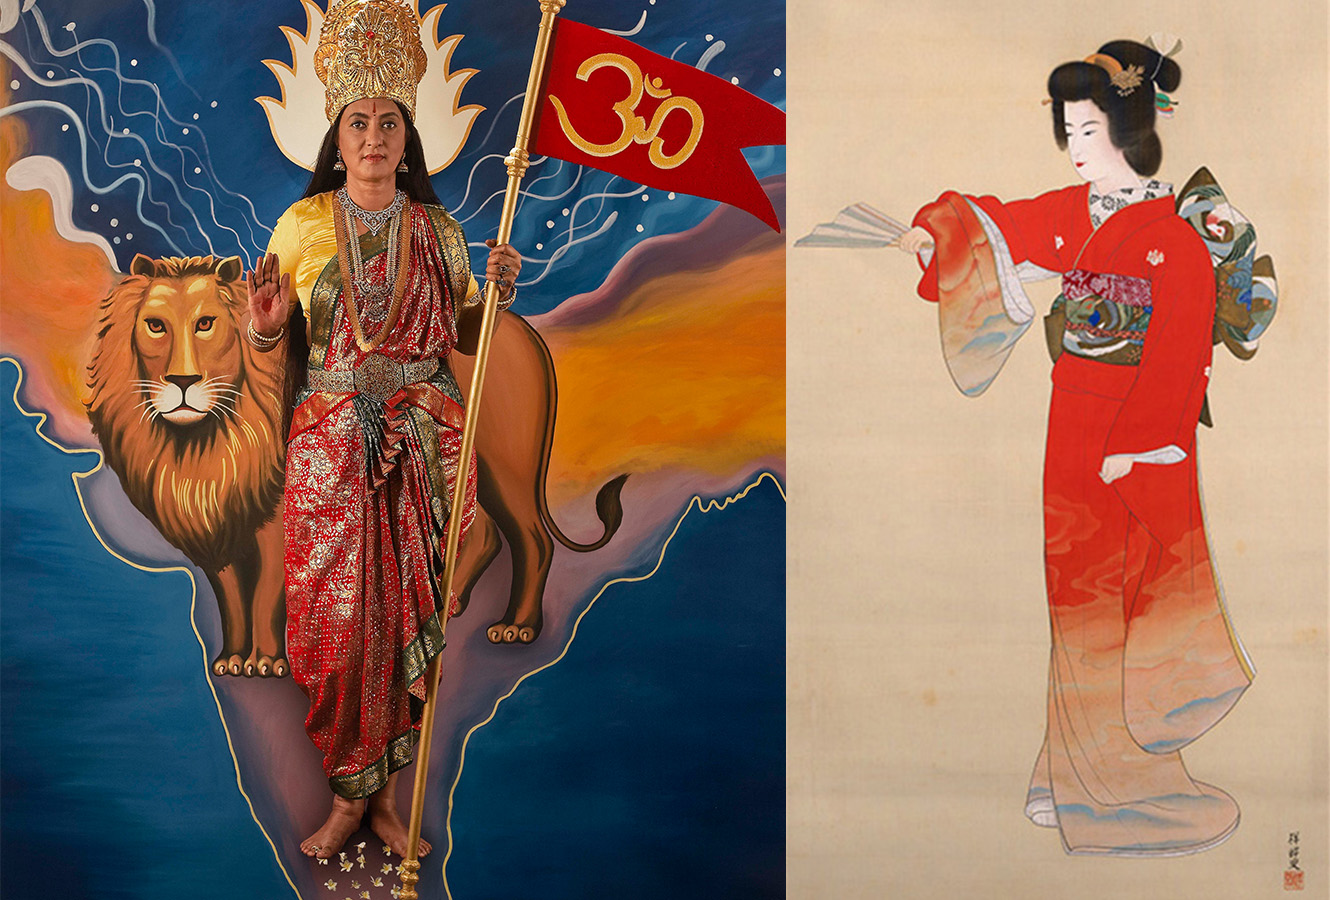 Painted ink scroll of a woman performing Noh Dance. Photo print of woman next to a lion holding a red flag with om symbol.